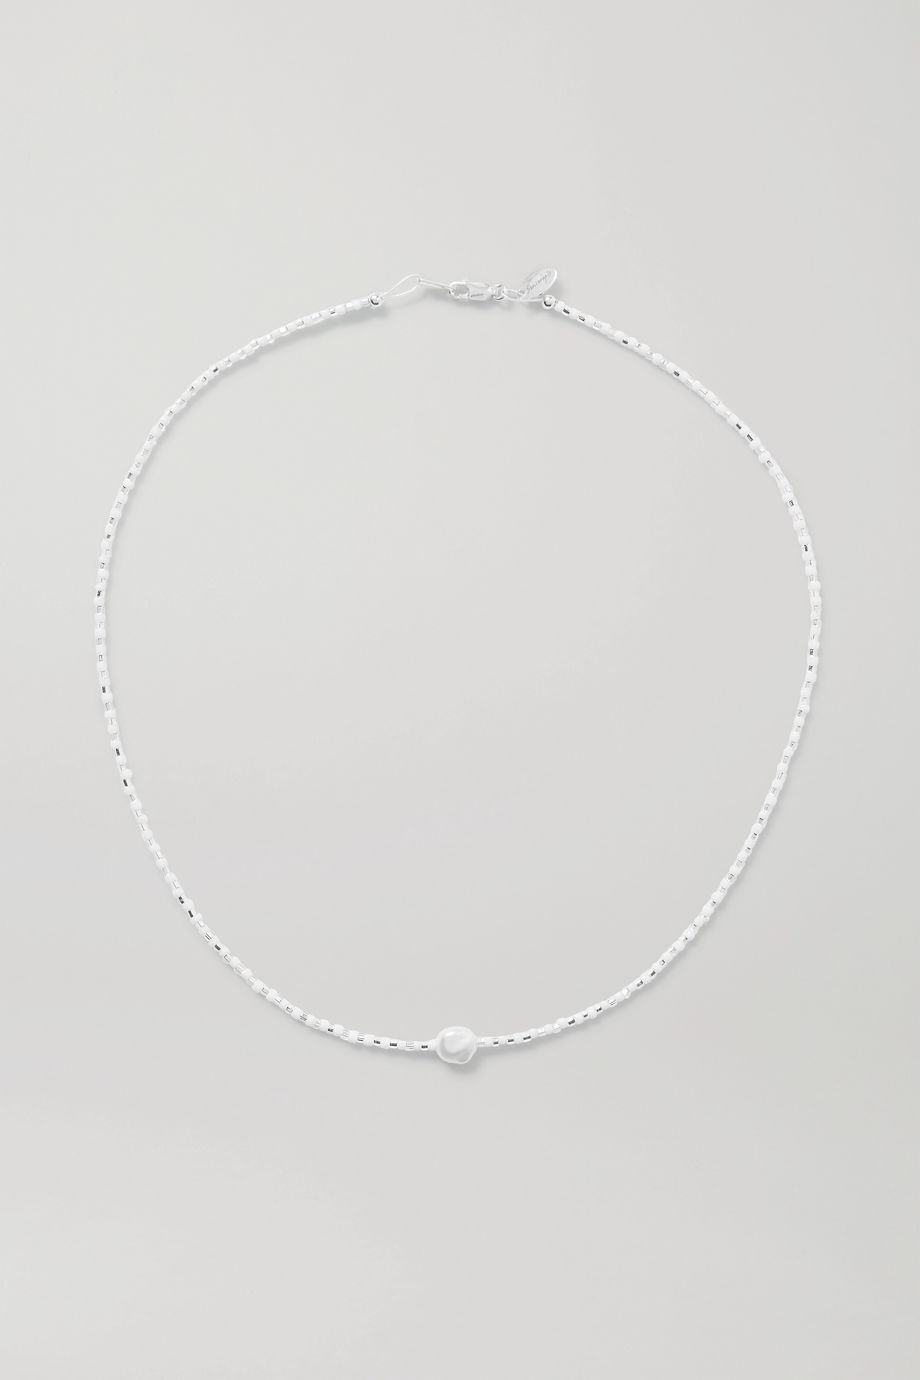 Santangelo Somos Como Niños silver, pearl and bead necklace